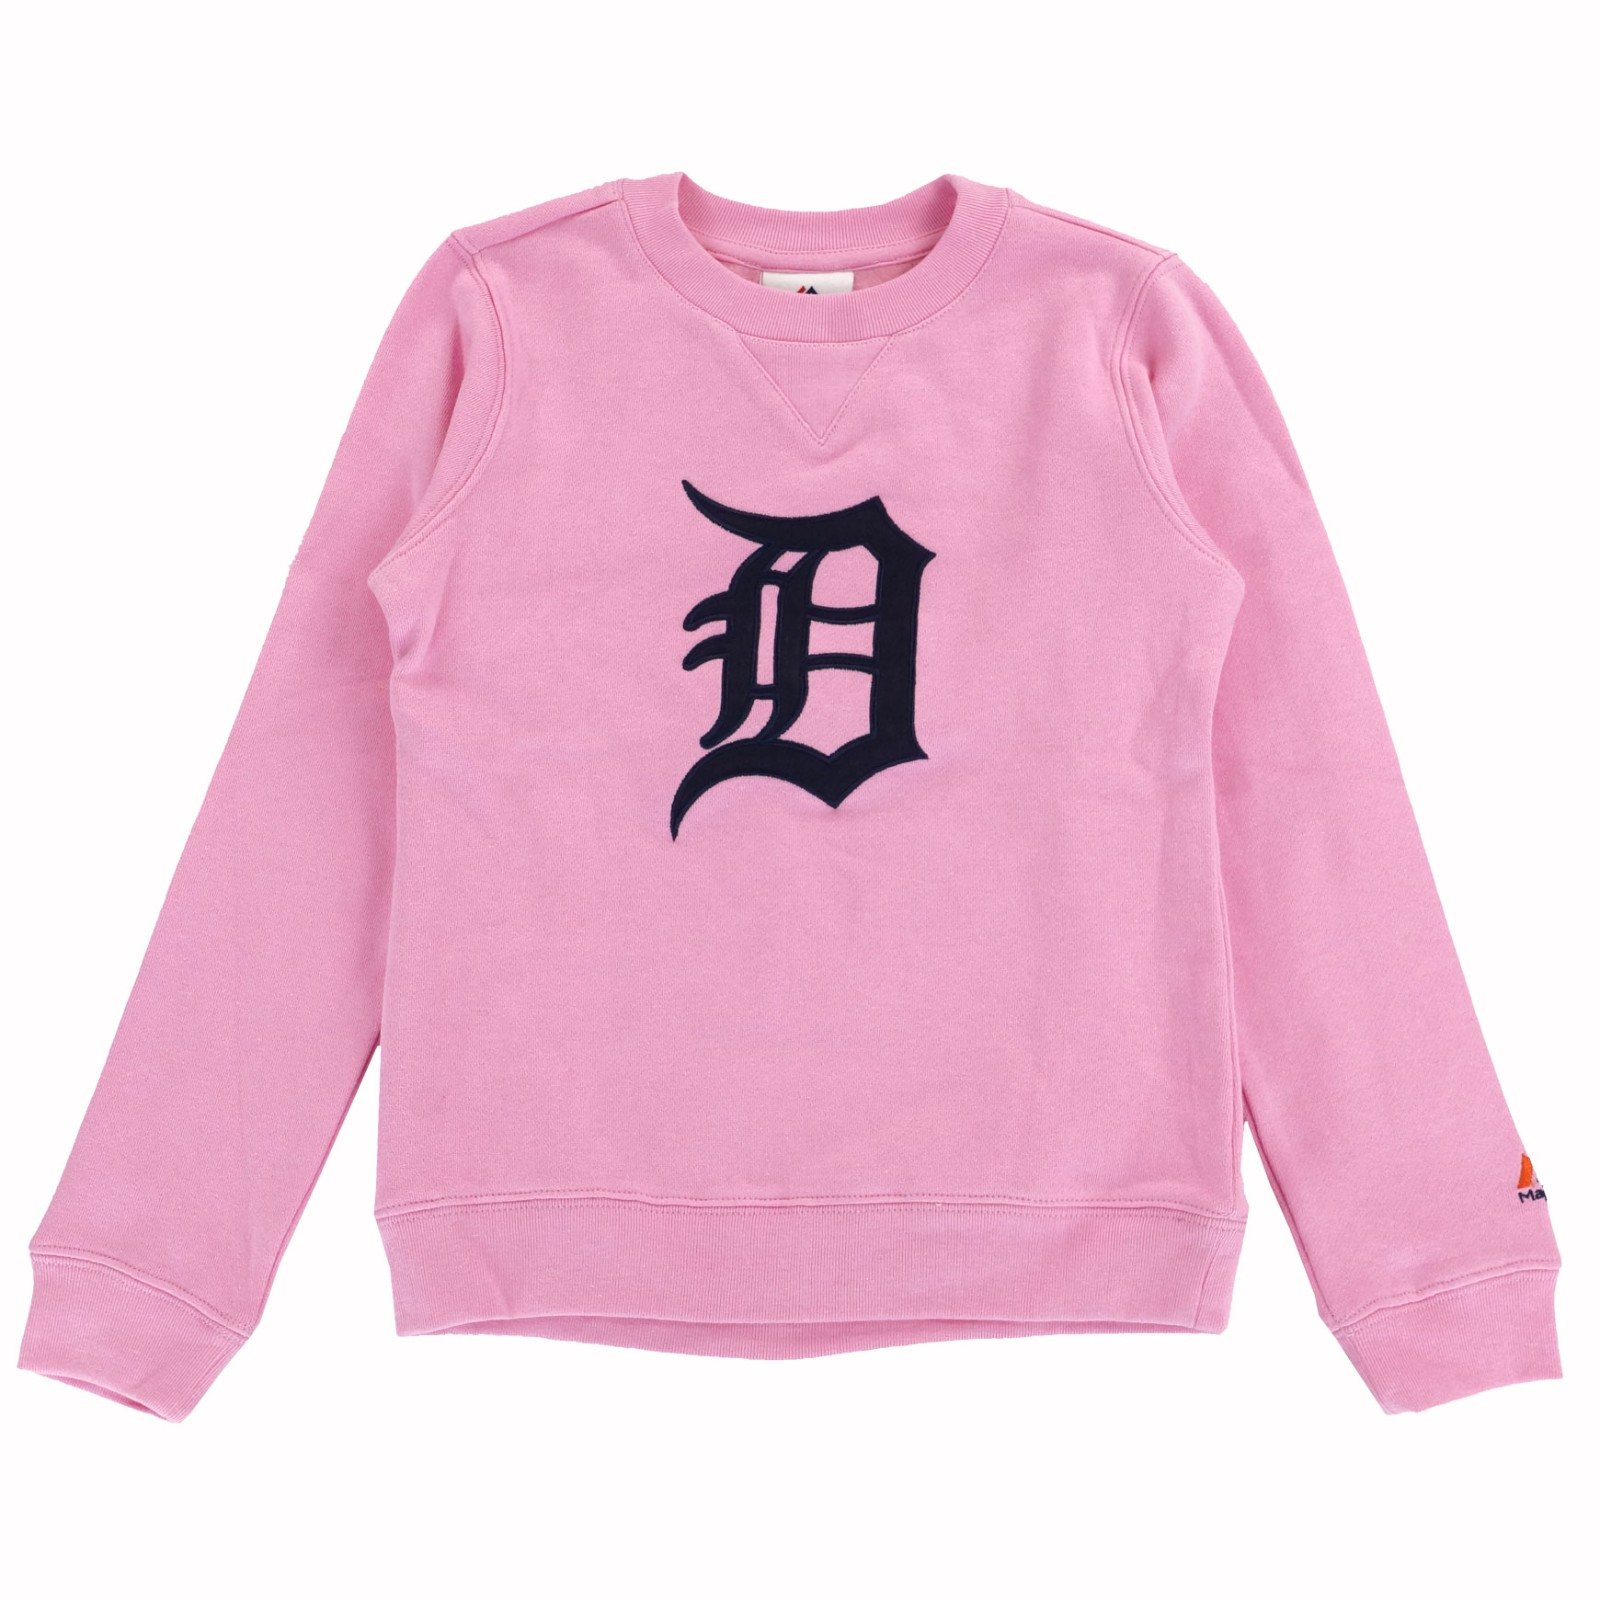 premium selection 2a305 67321 Details about Detroit Tigers MLB Majestic